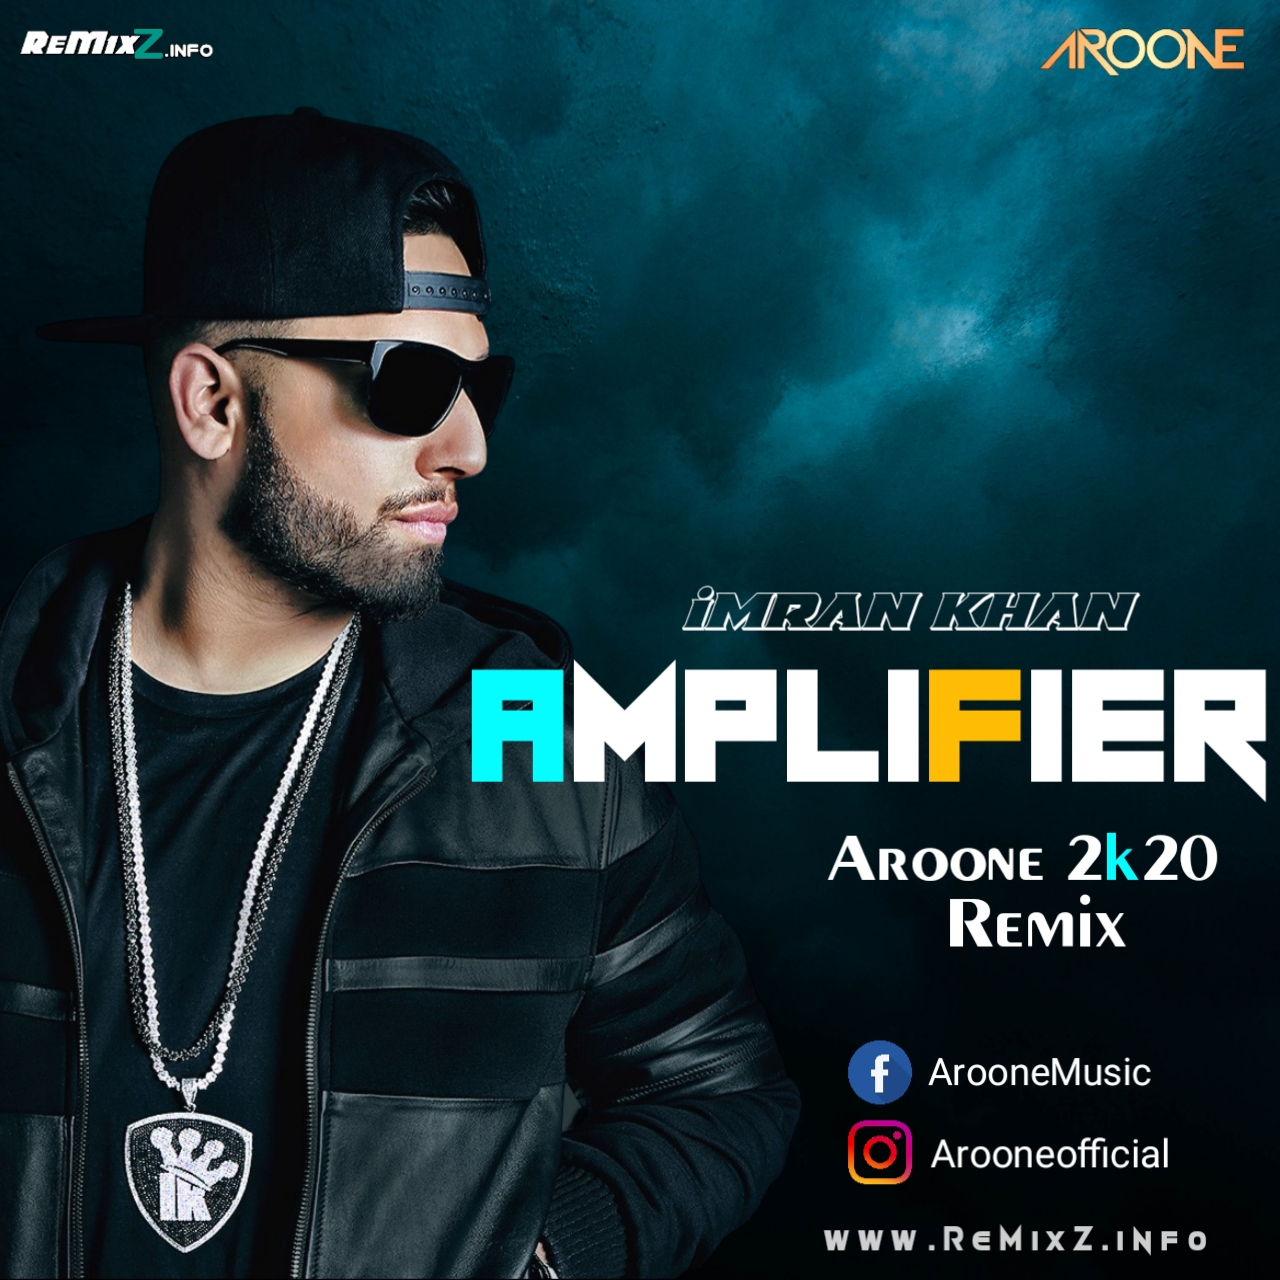 amplifier-imran-khan-aroone-2k20-remix.jpg